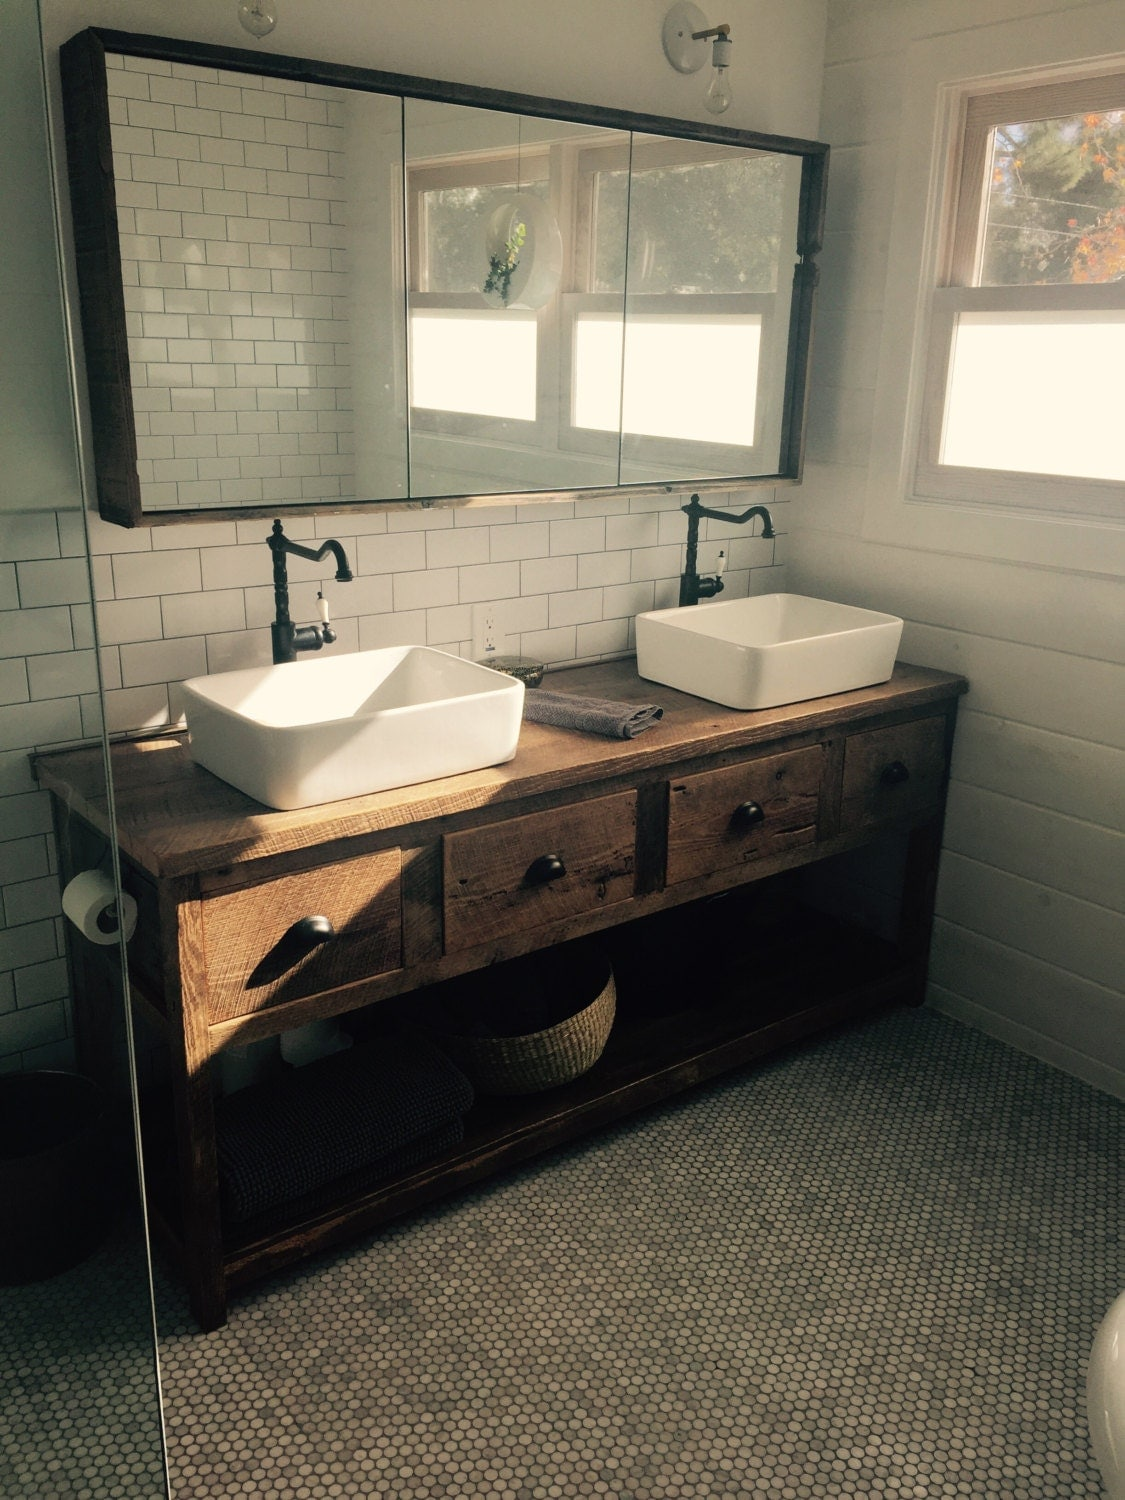 YOUR Custom Rustic Barn Wood Double Vanity Or Cabinet With A